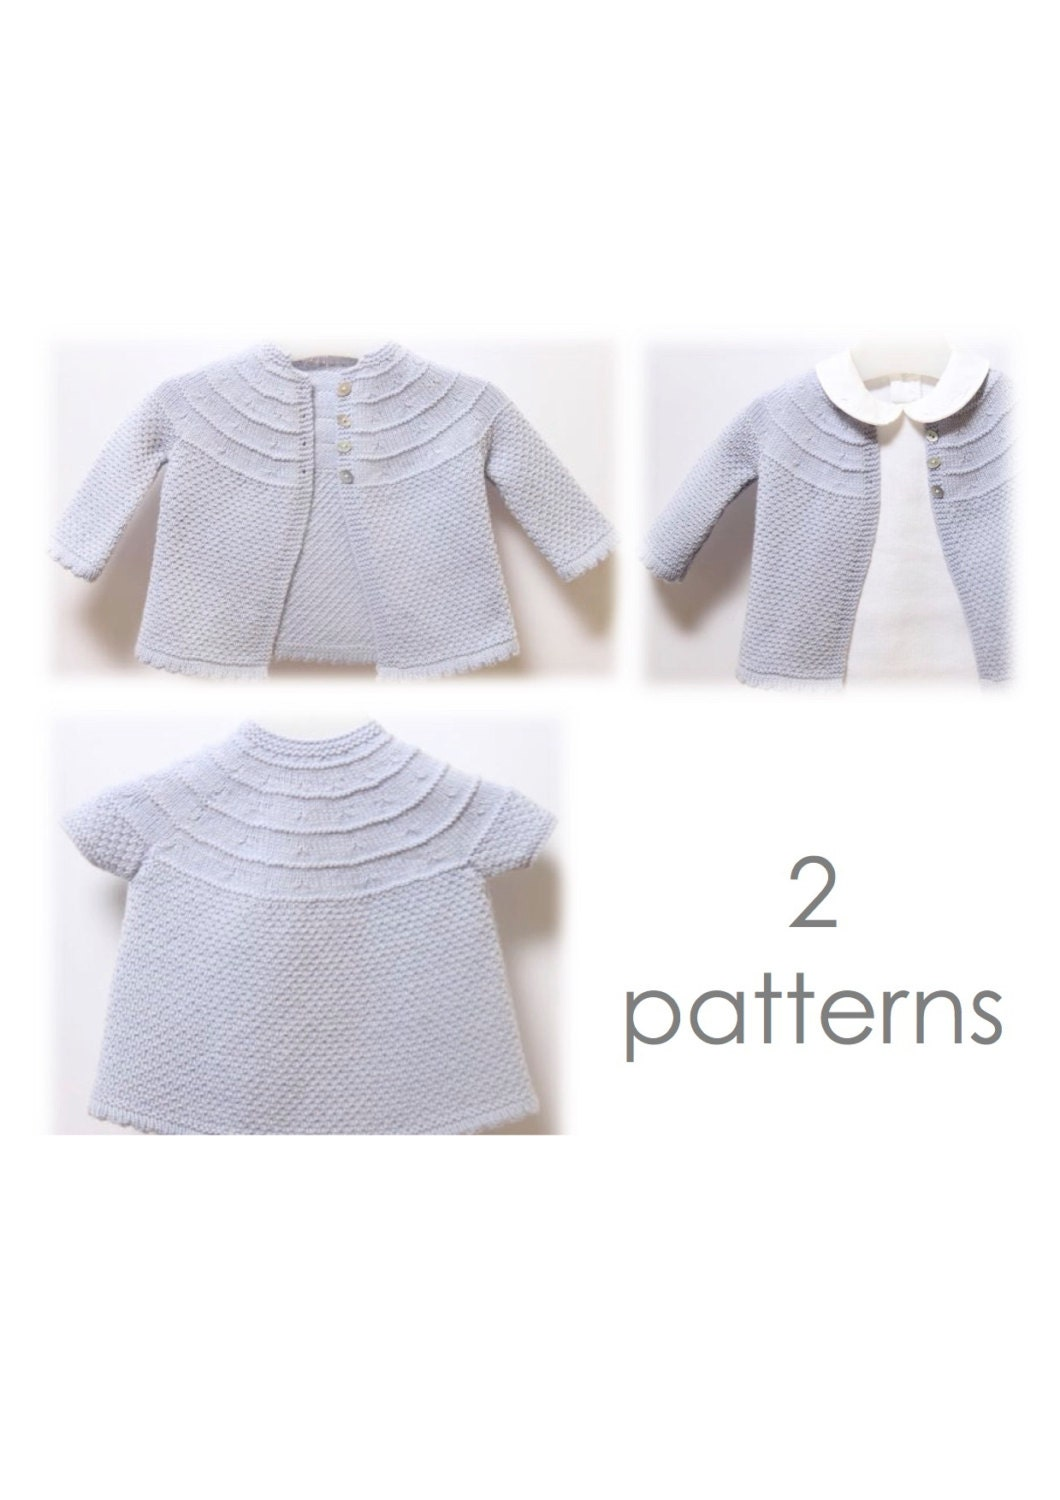 Baby Set / Knitting Pattern Instructions in English / PDF